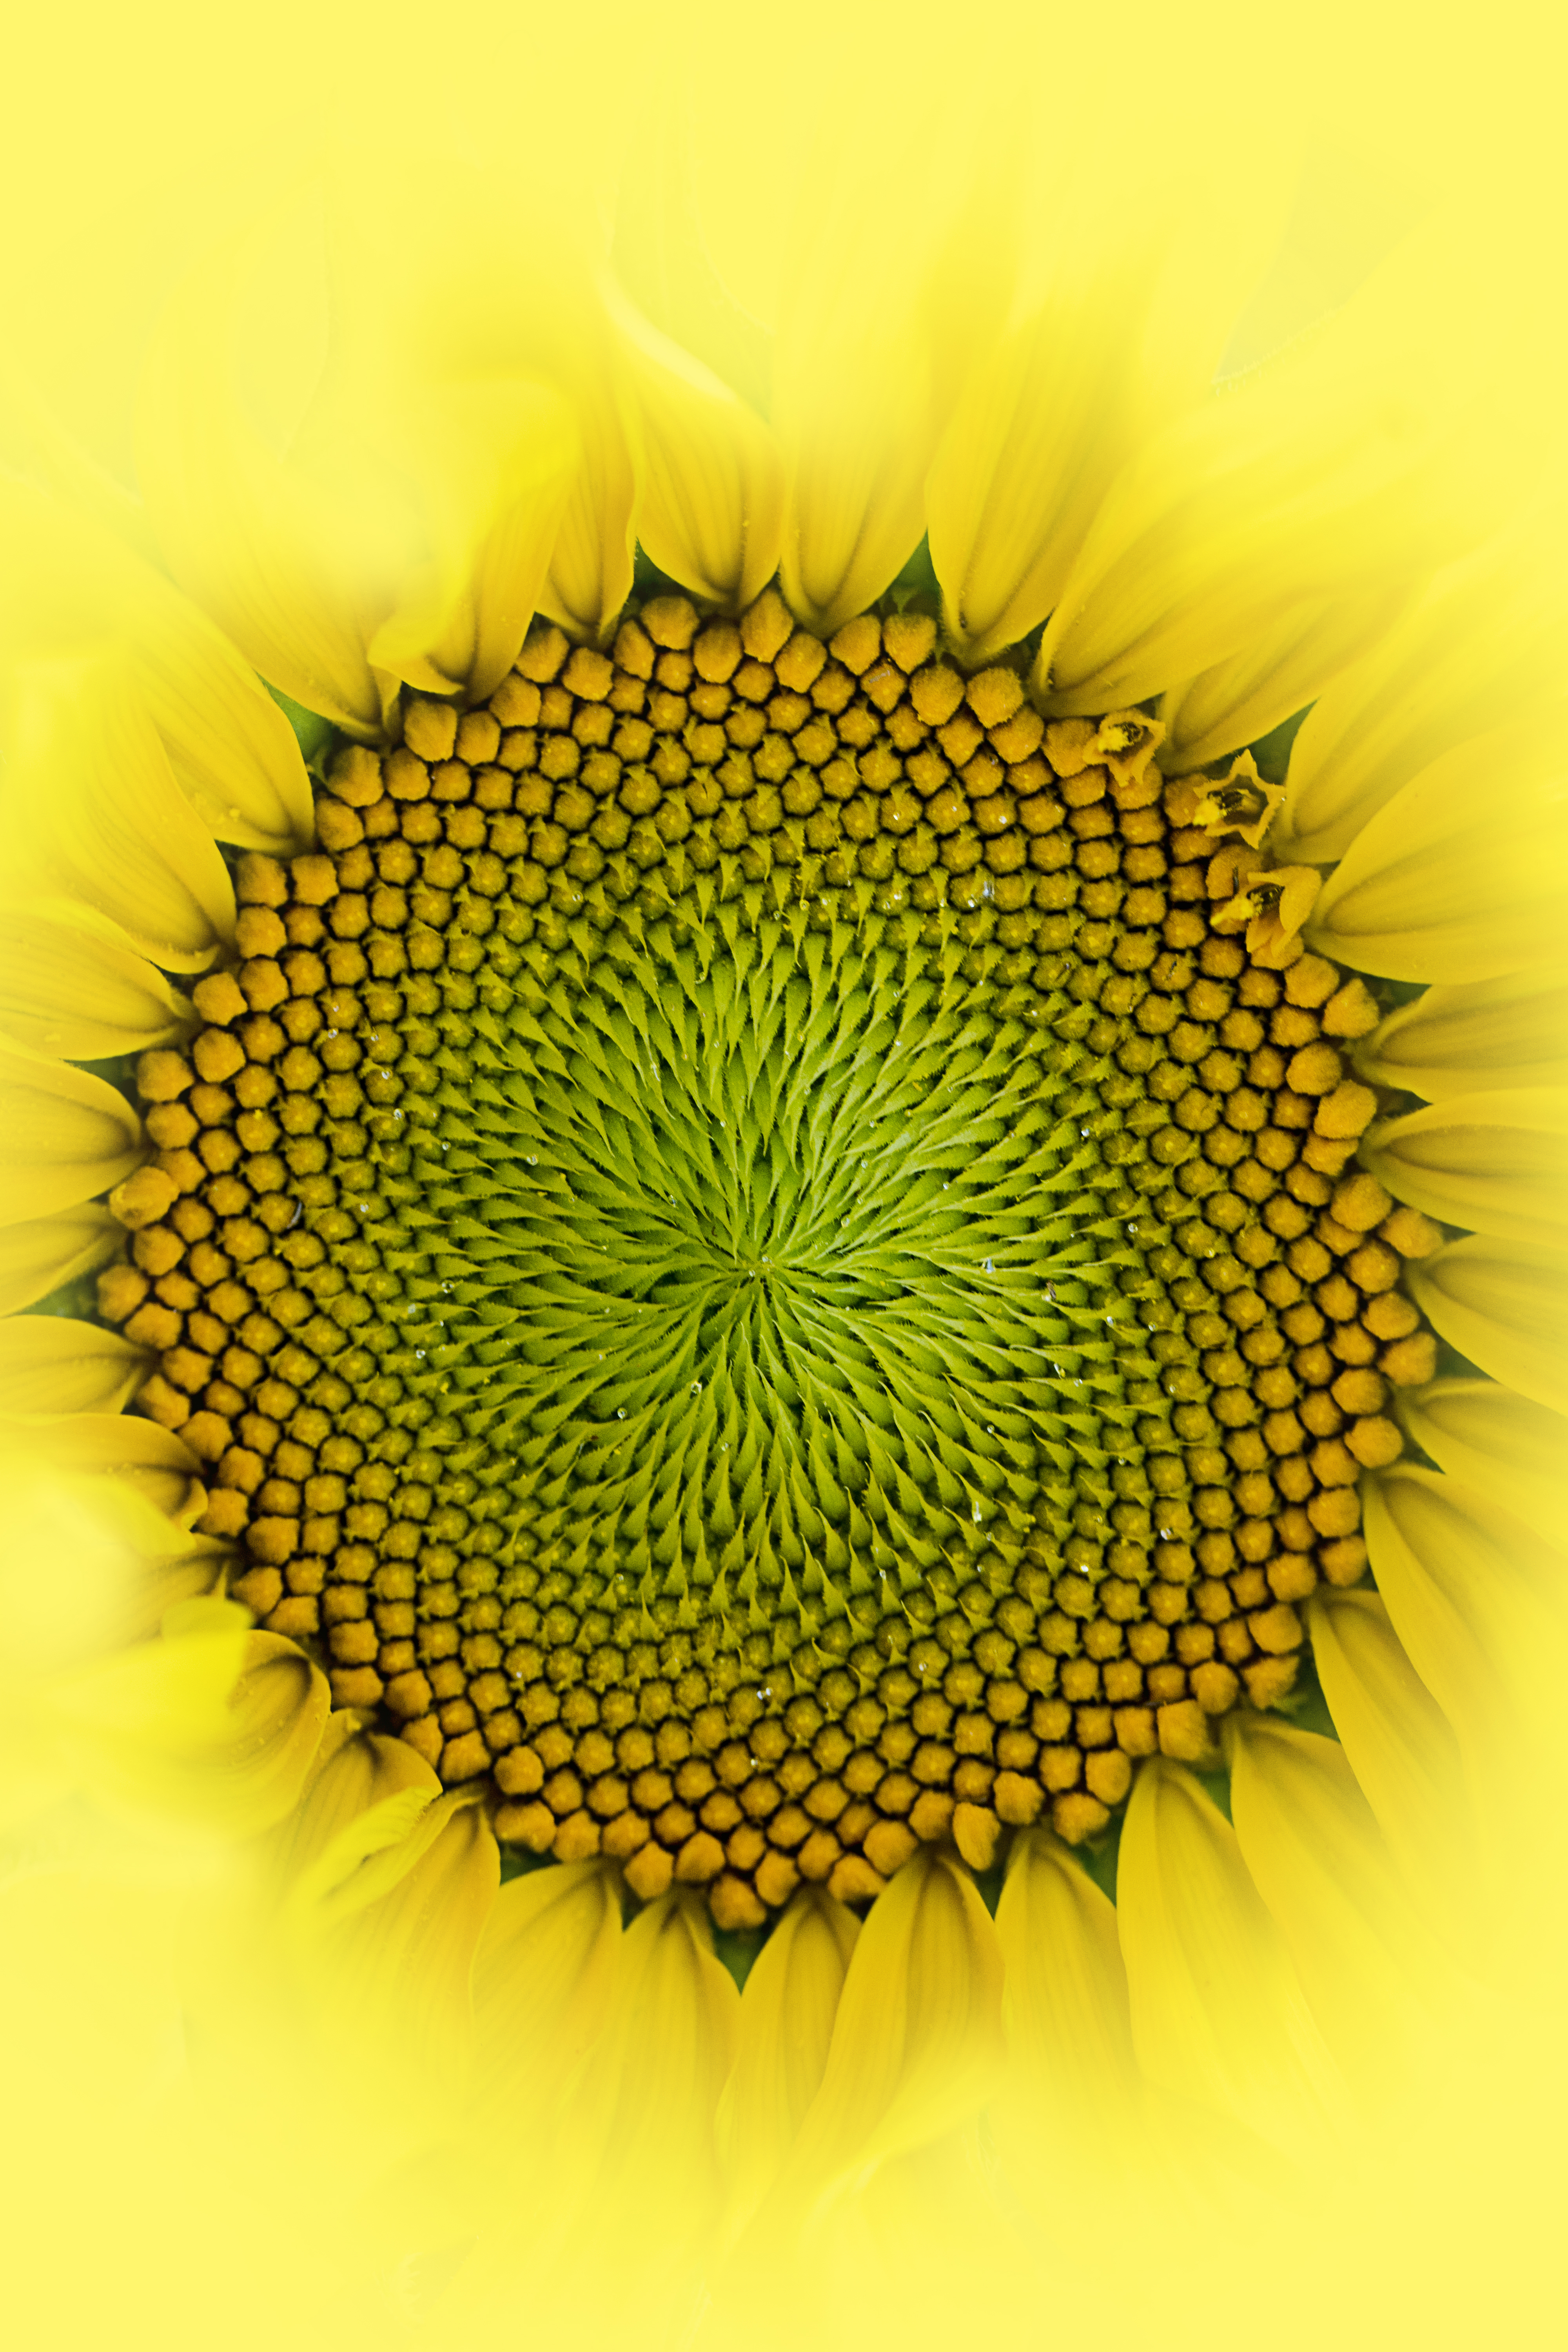 76219 Screensavers and Wallpapers Drops for phone. Download Drops, Flower, Macro, Petals, Sunflower pictures for free